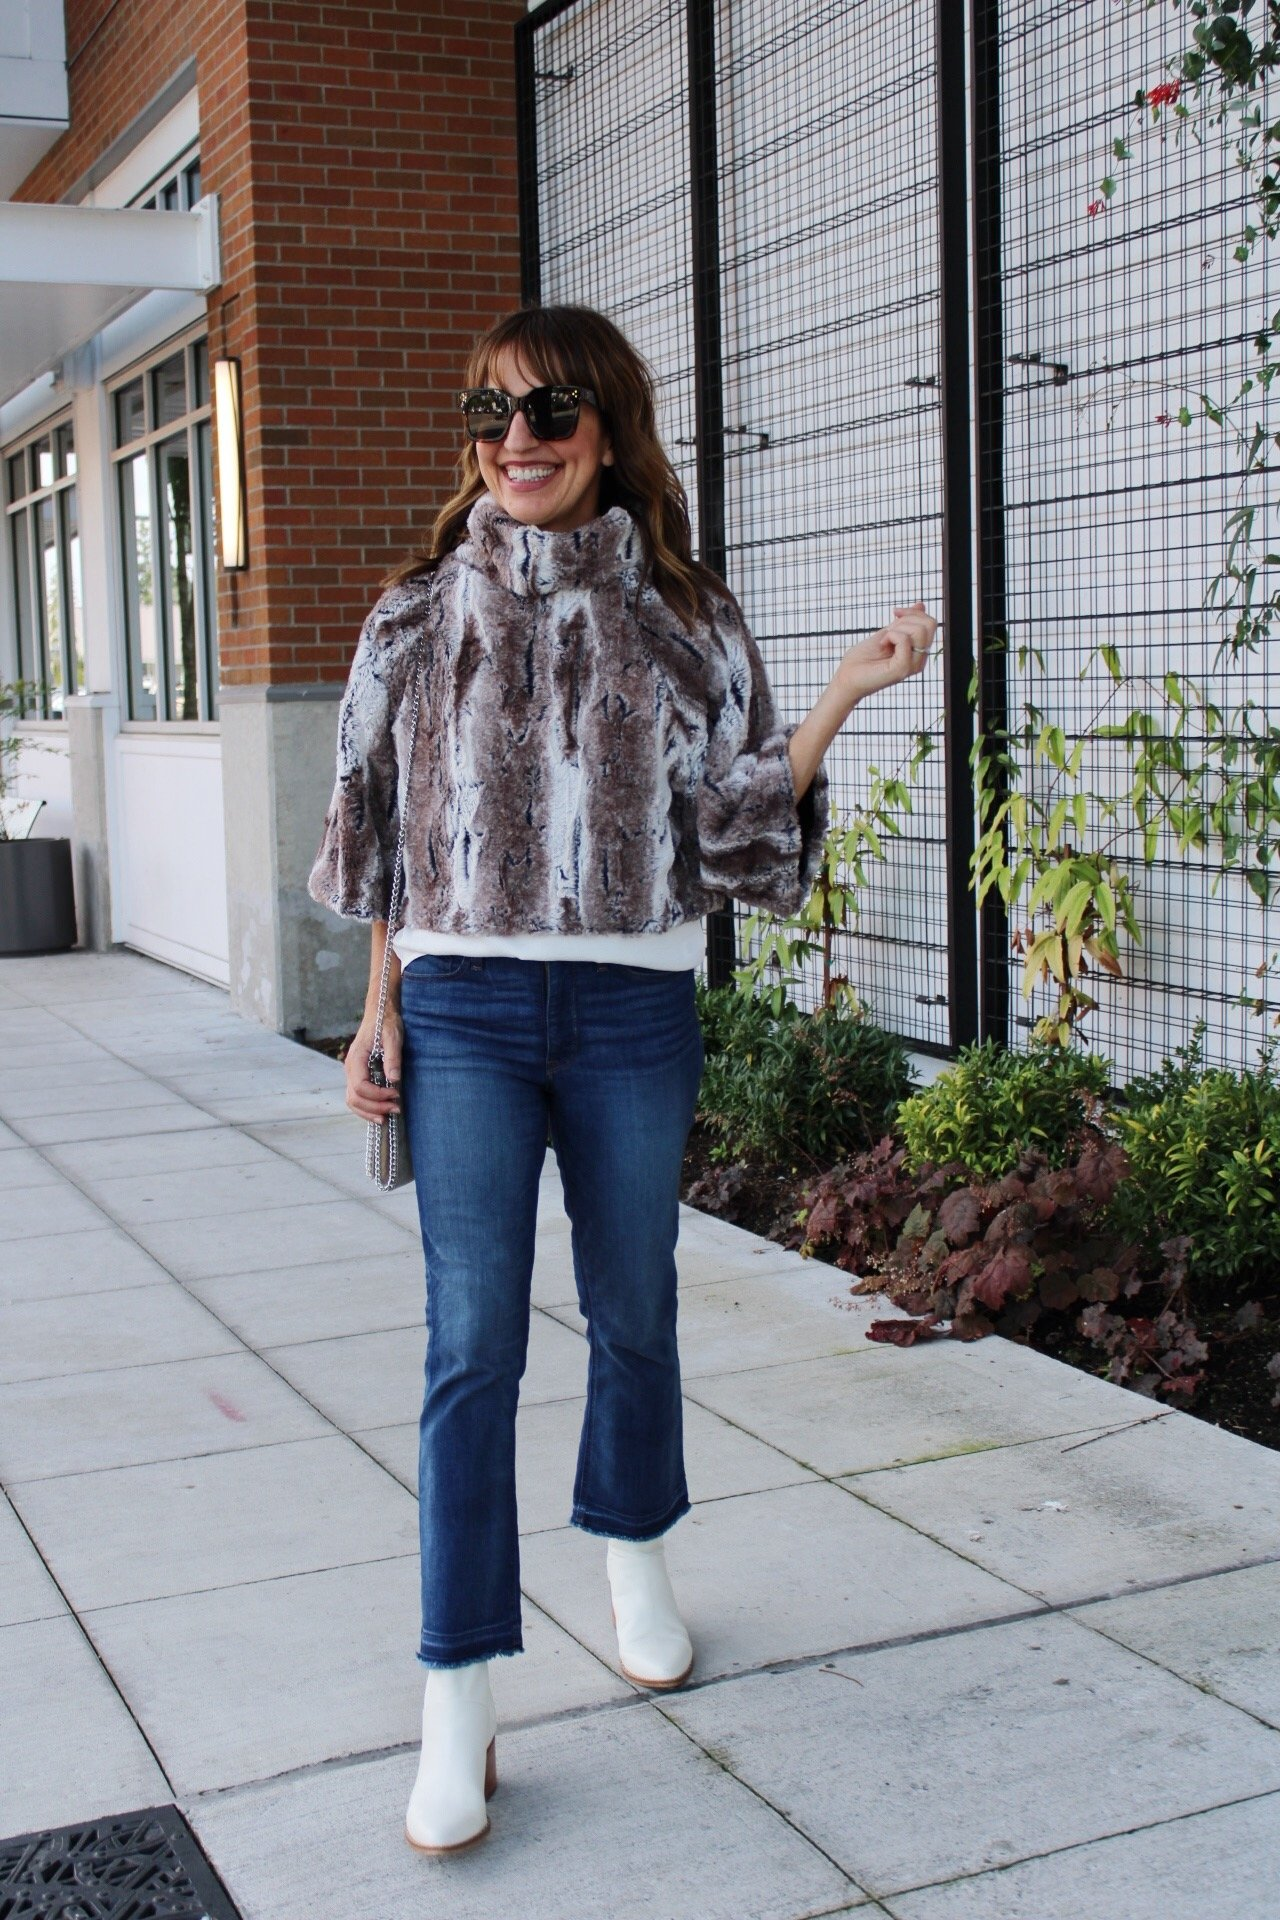 wearing faux fur for fall, fall faux fur outfit